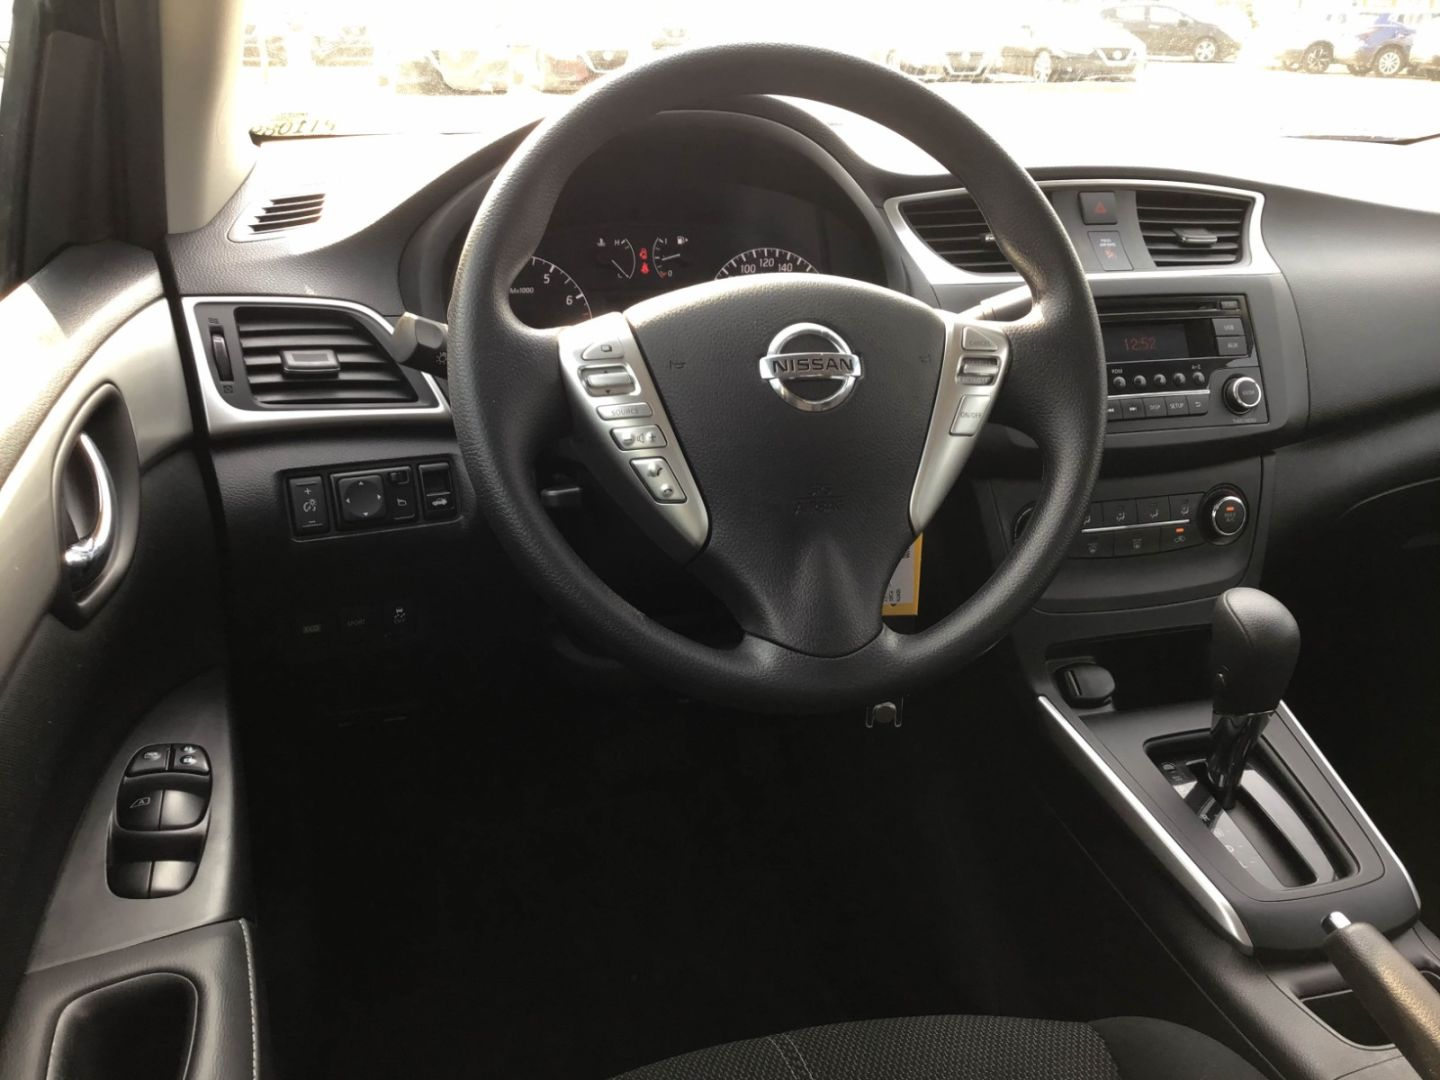 2017 Nissan Sentra S for sale in Edmonton, Alberta